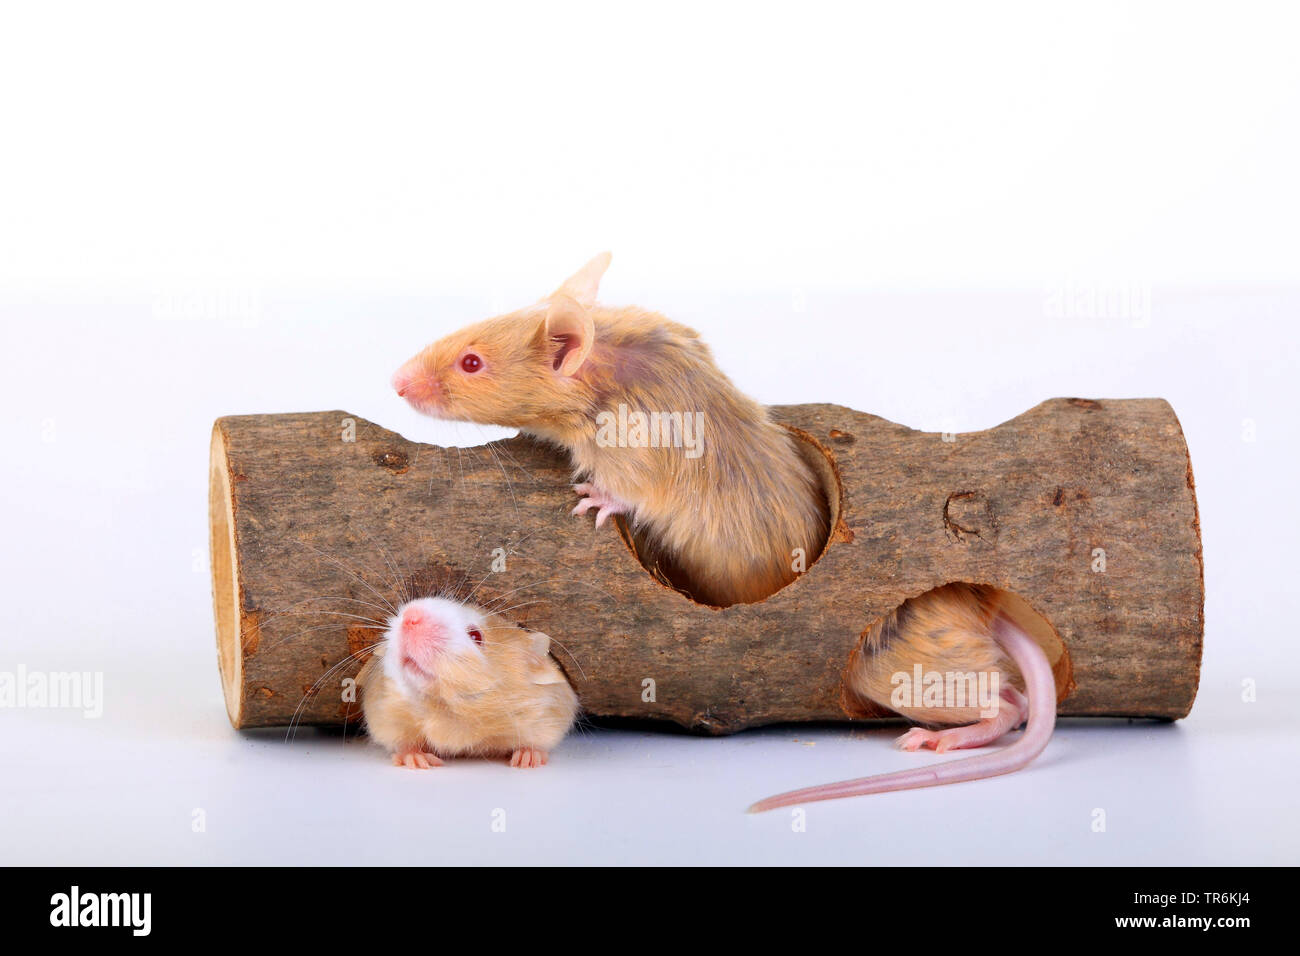 fancy mouse (Mus musculus), fany mice in a woode tube, Germany Stock Photo